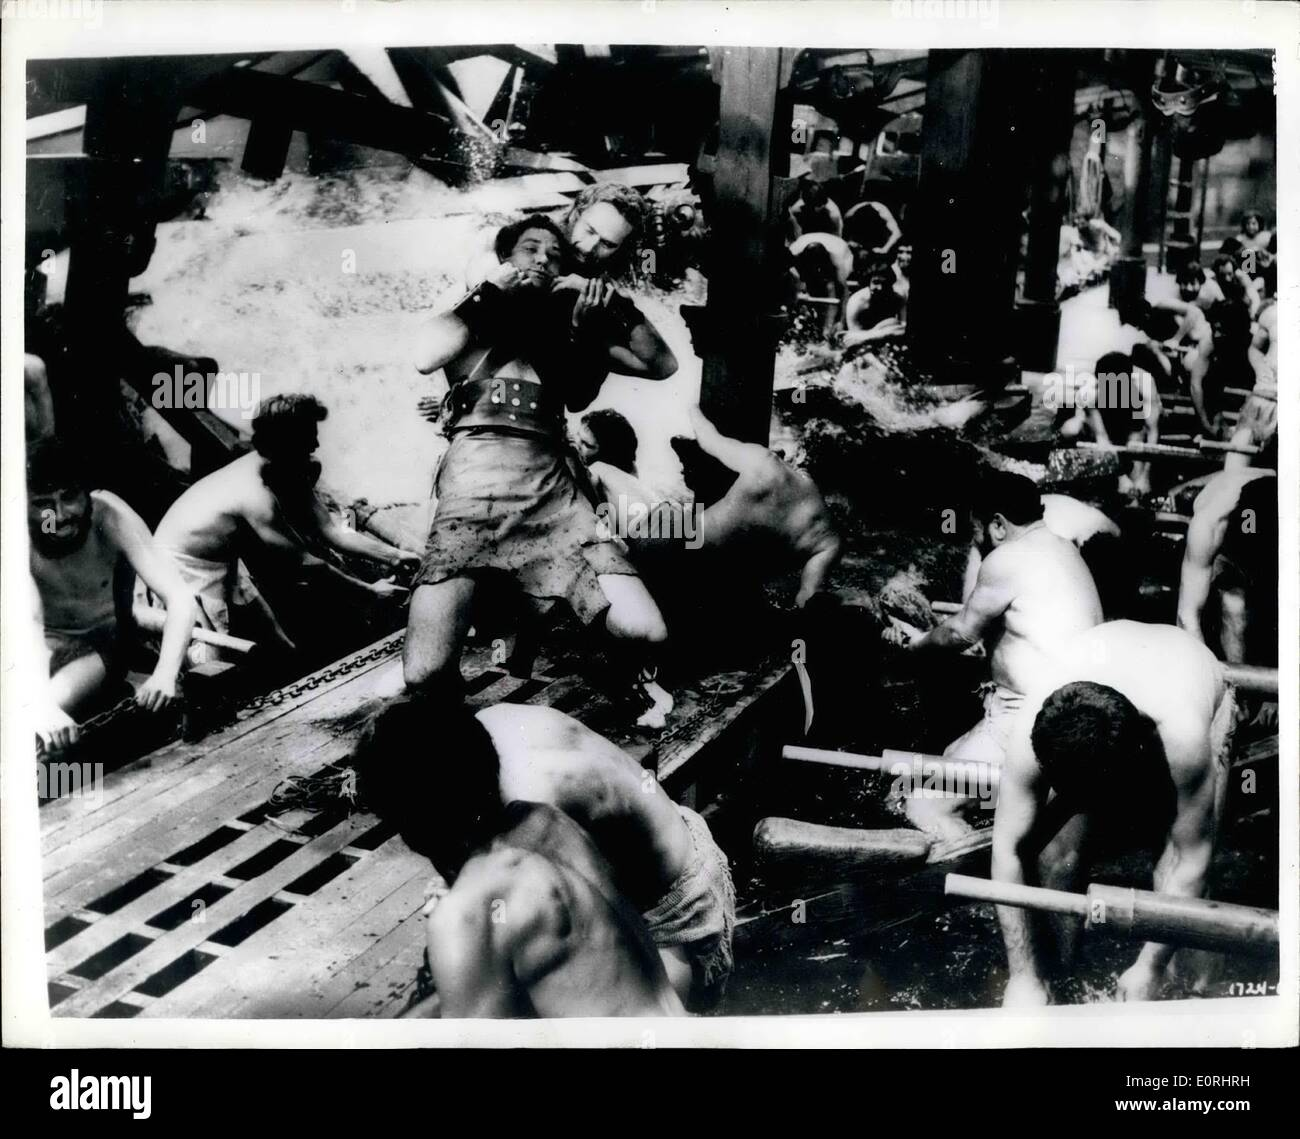 Nov. 11, 1959 - The fight in the galley.. new film version of ''Ben Hur''.. The realistic fight in the galley - a scene from the new film version of ''Ben Hur'' - produced by Metro-Goldwyn-Mayer. The film has its European Premiere in London - on December 16th. - Stock Image